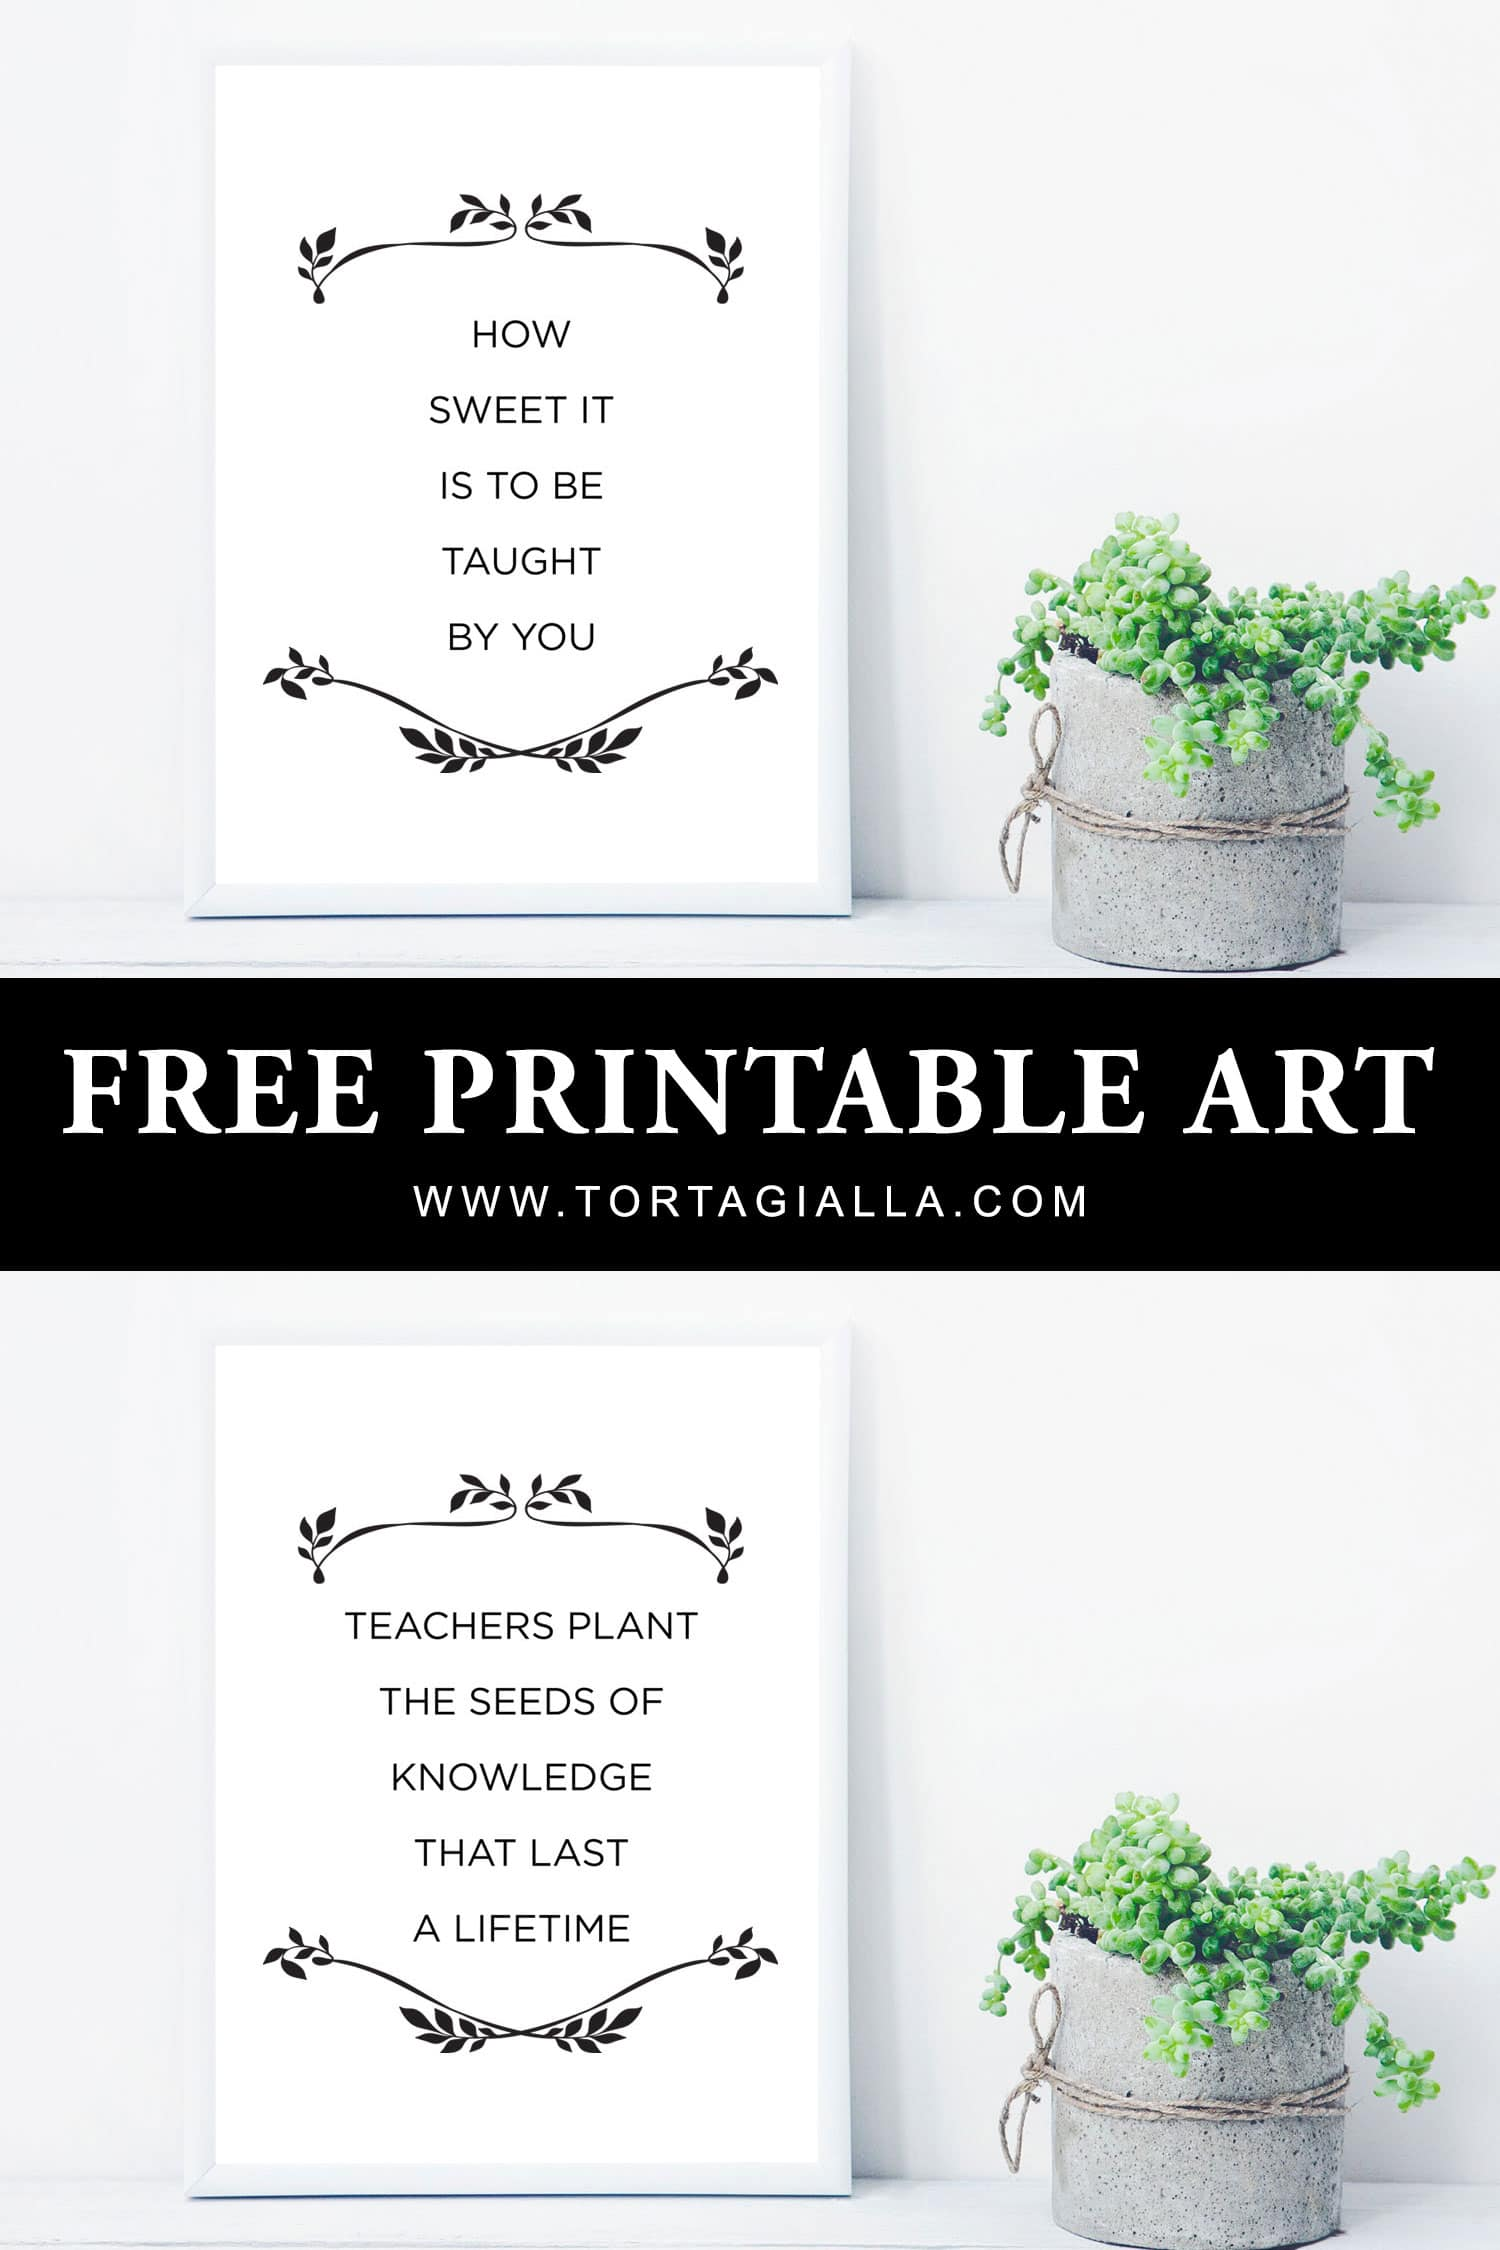 image about Free Printable Teacher Appreciation Quotes called Totally free Printable Instructor Appreciation Offers tortagialla